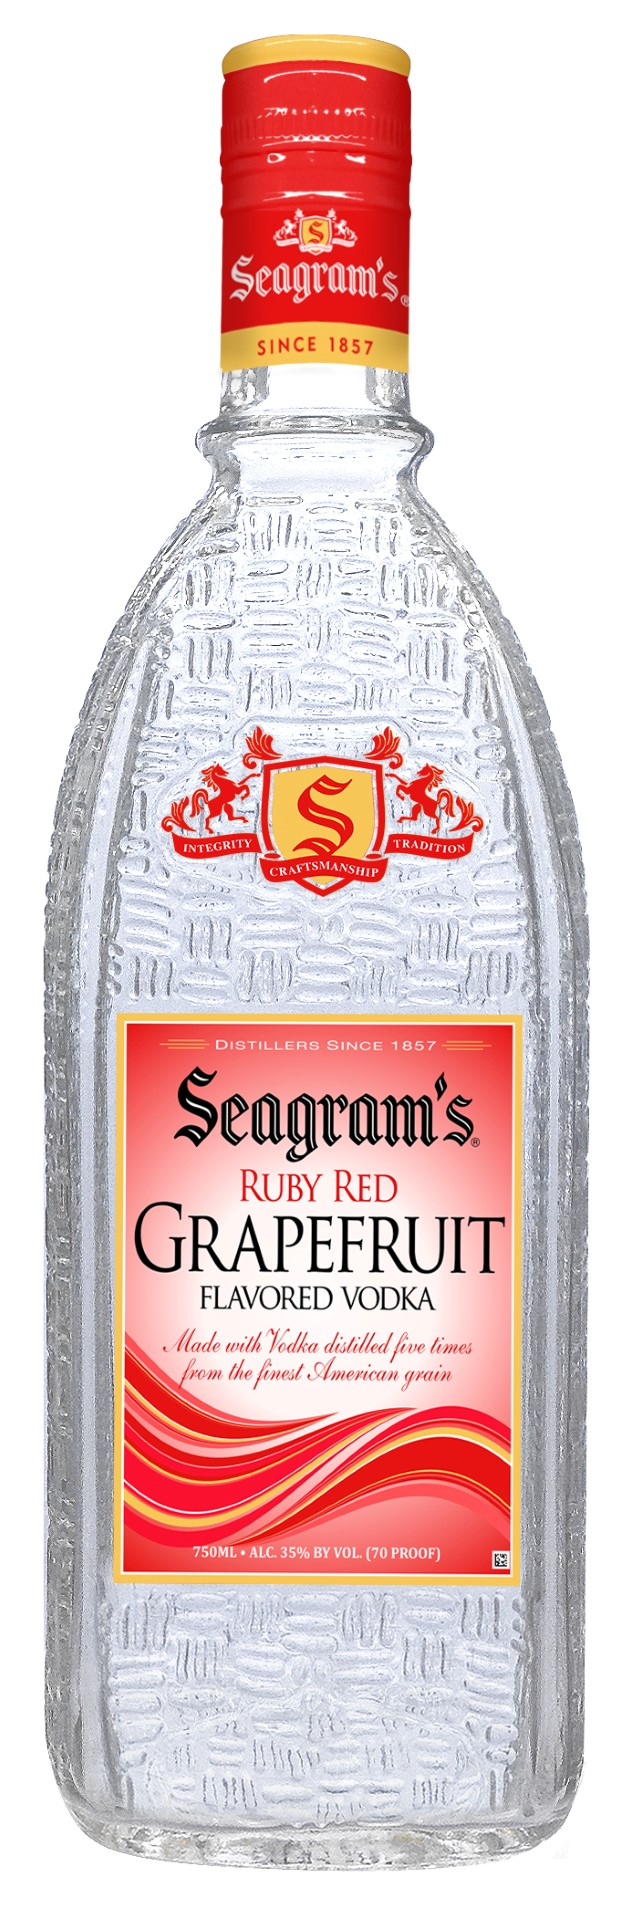 Seagram's Ruby Red Grapefruit Flavored Vodka